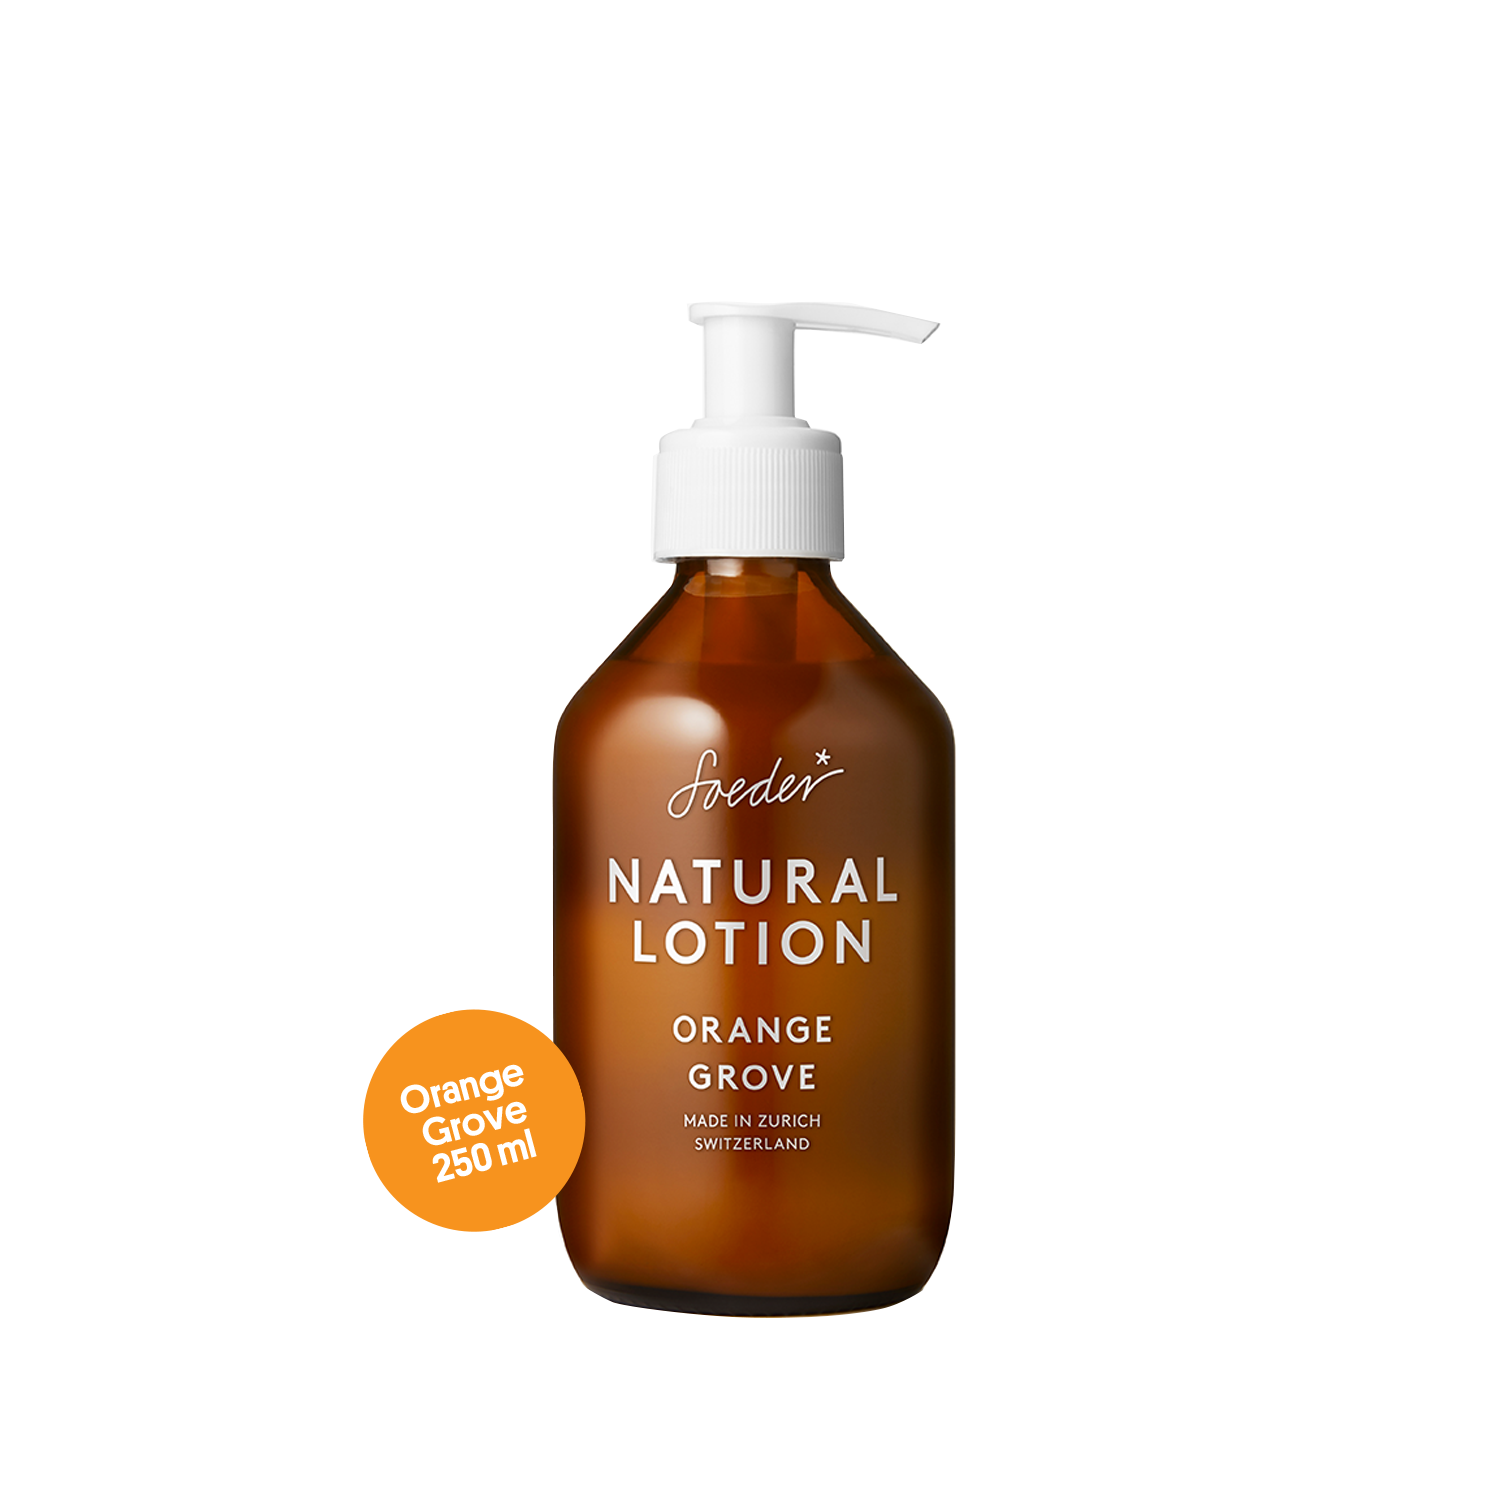 Natural Lotion – Orange Grove 250 ml von soeder*